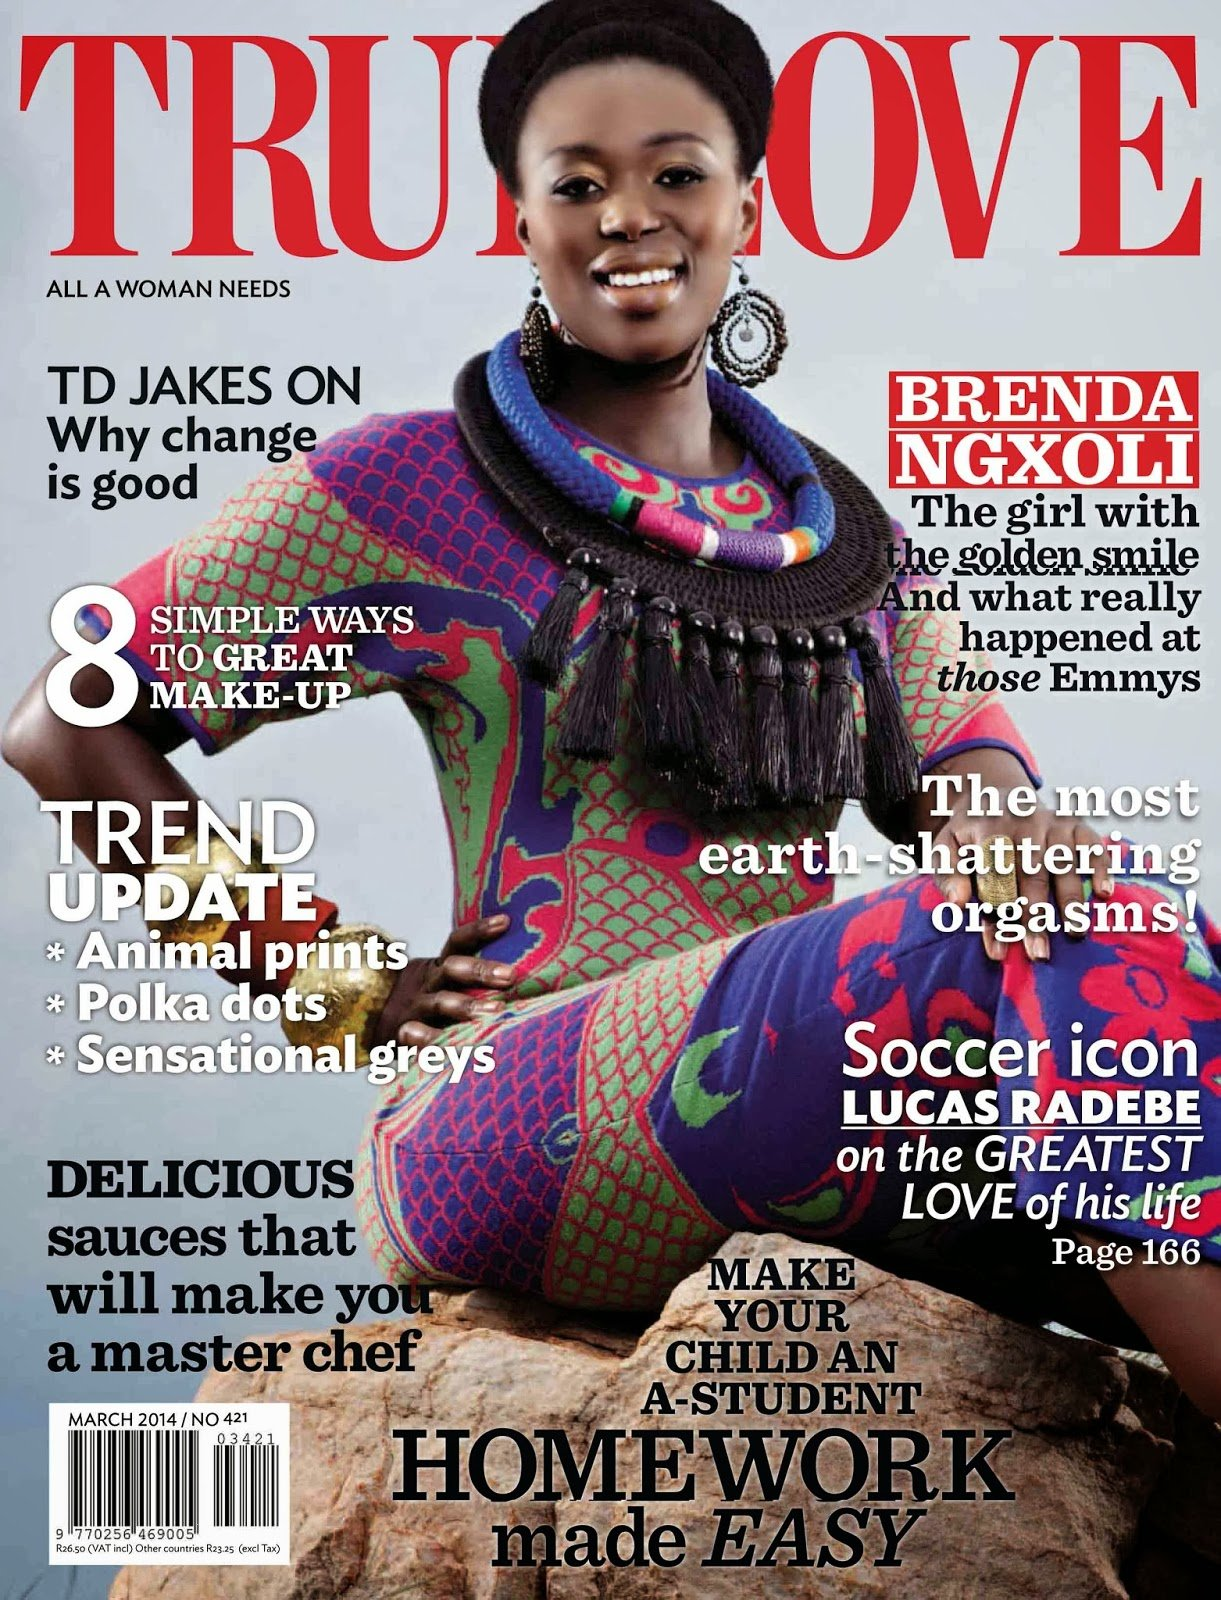 Brenda-Ngxoli-TRUE-LOVE-March-2014-FAB-Magazine